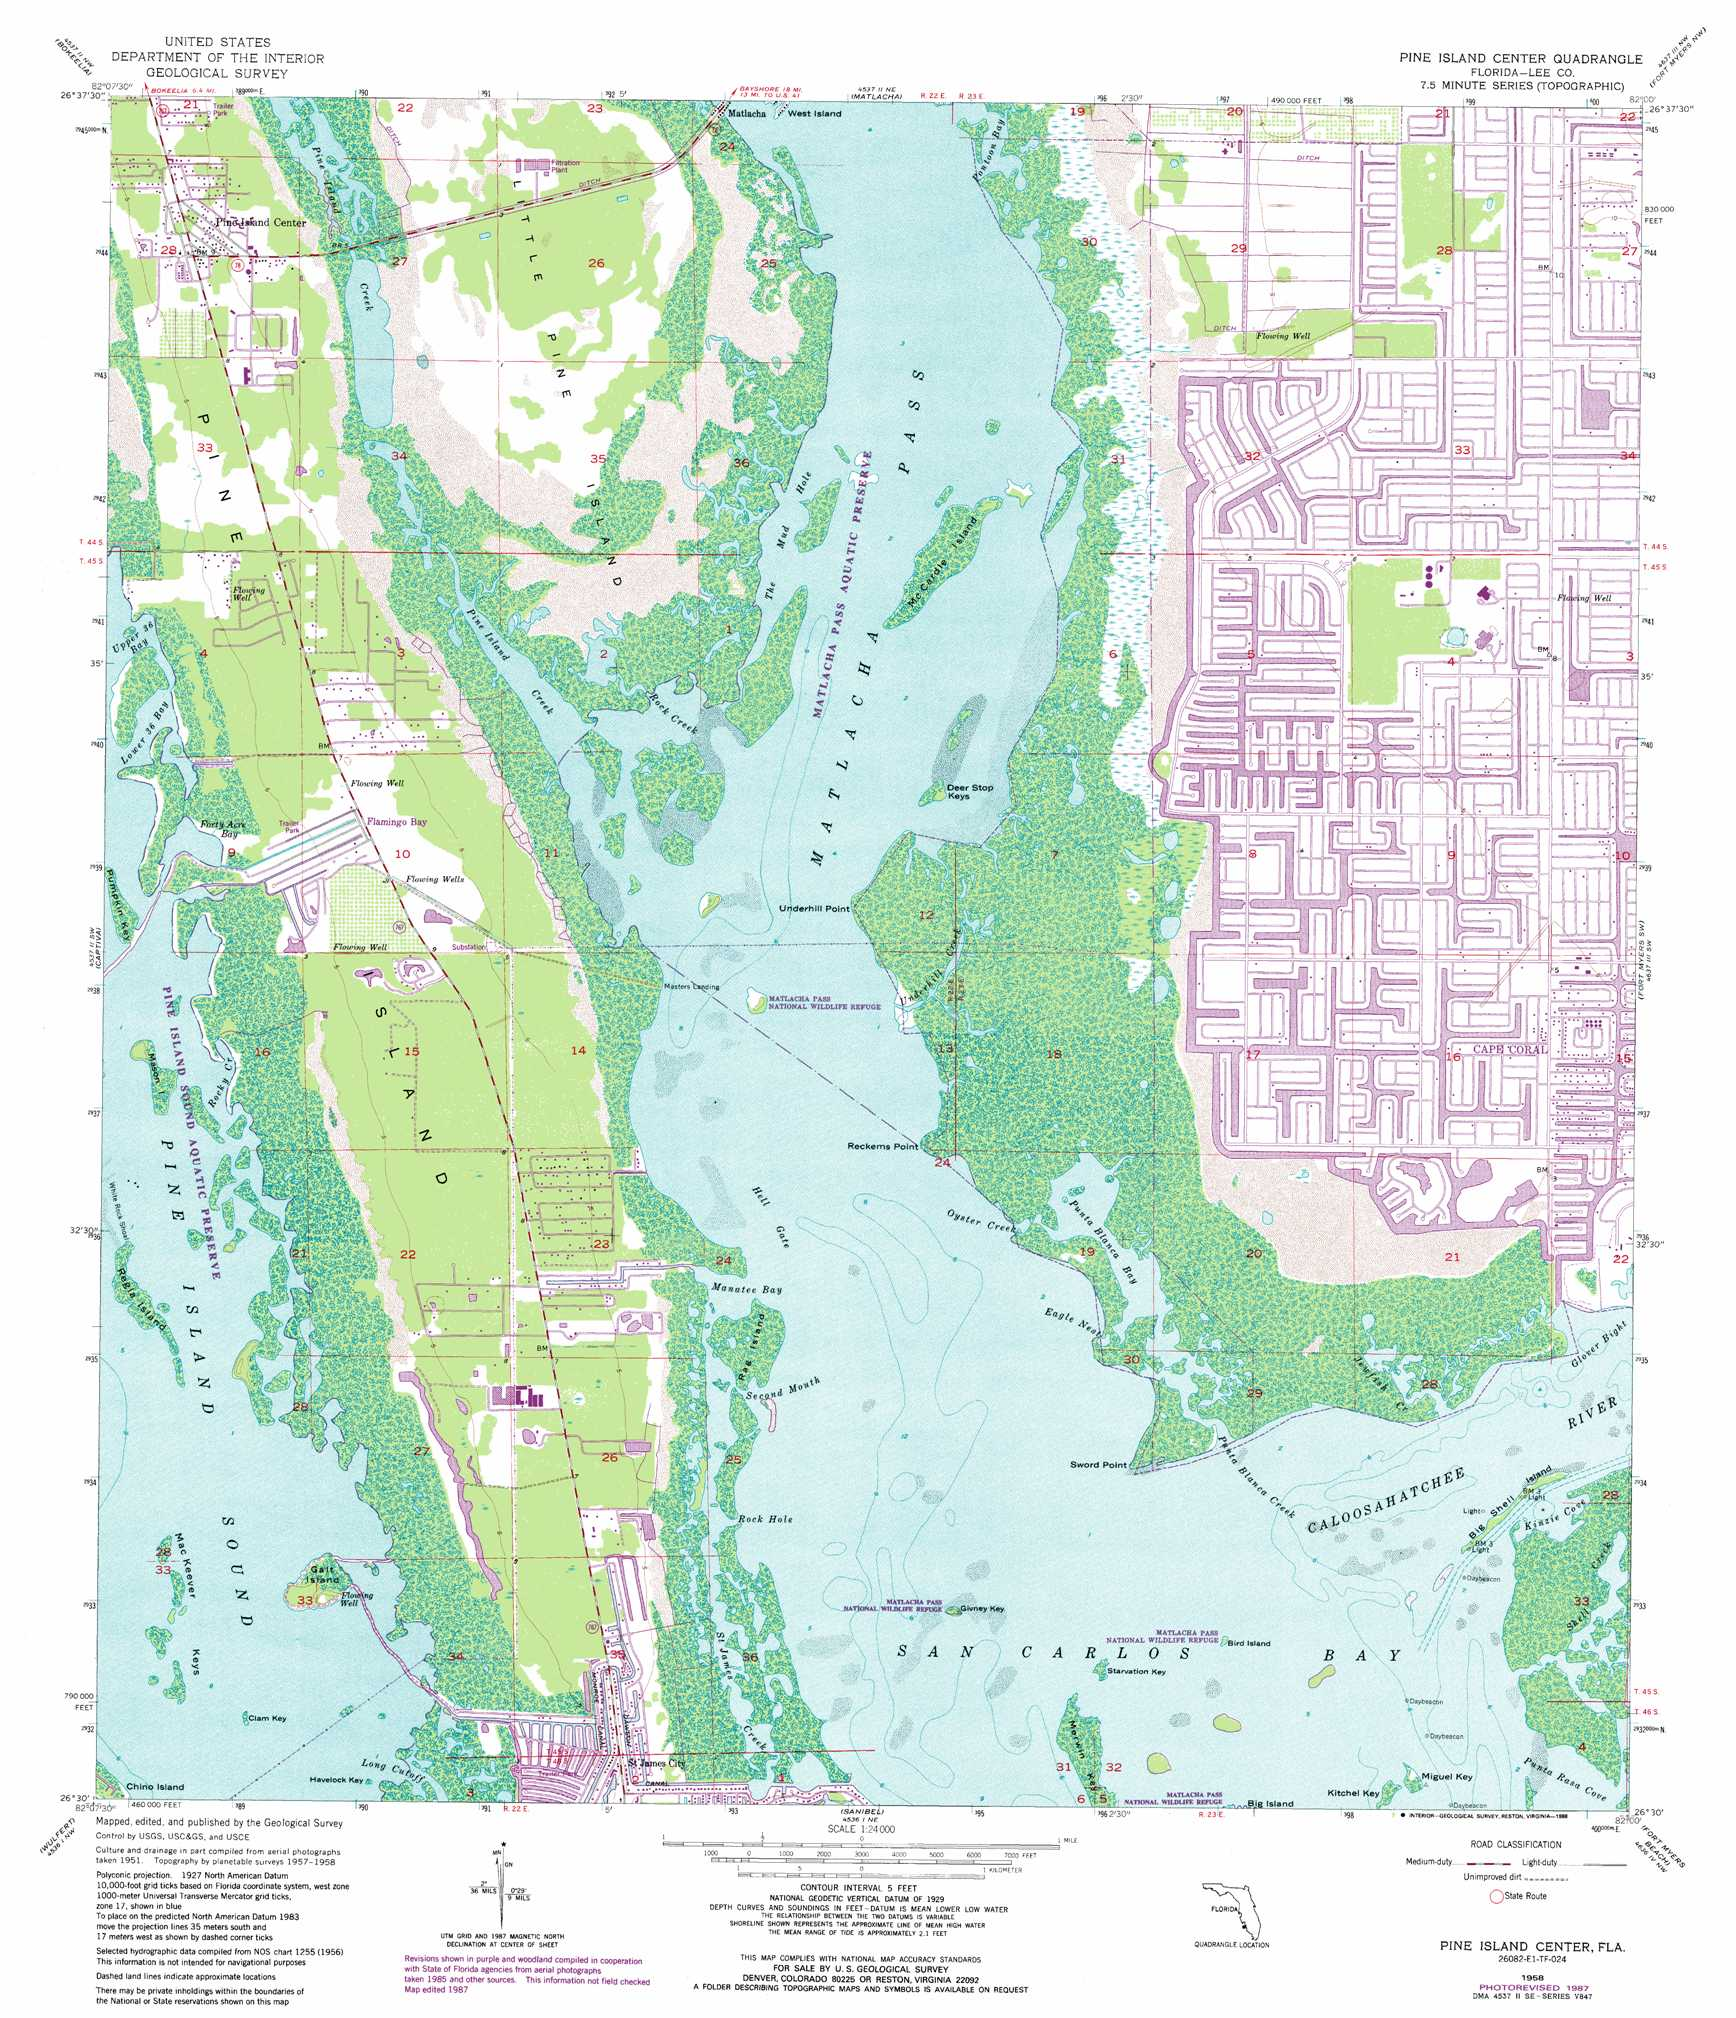 Pine Island Center topographic map, FL - USGS Topo Quad 26082e1